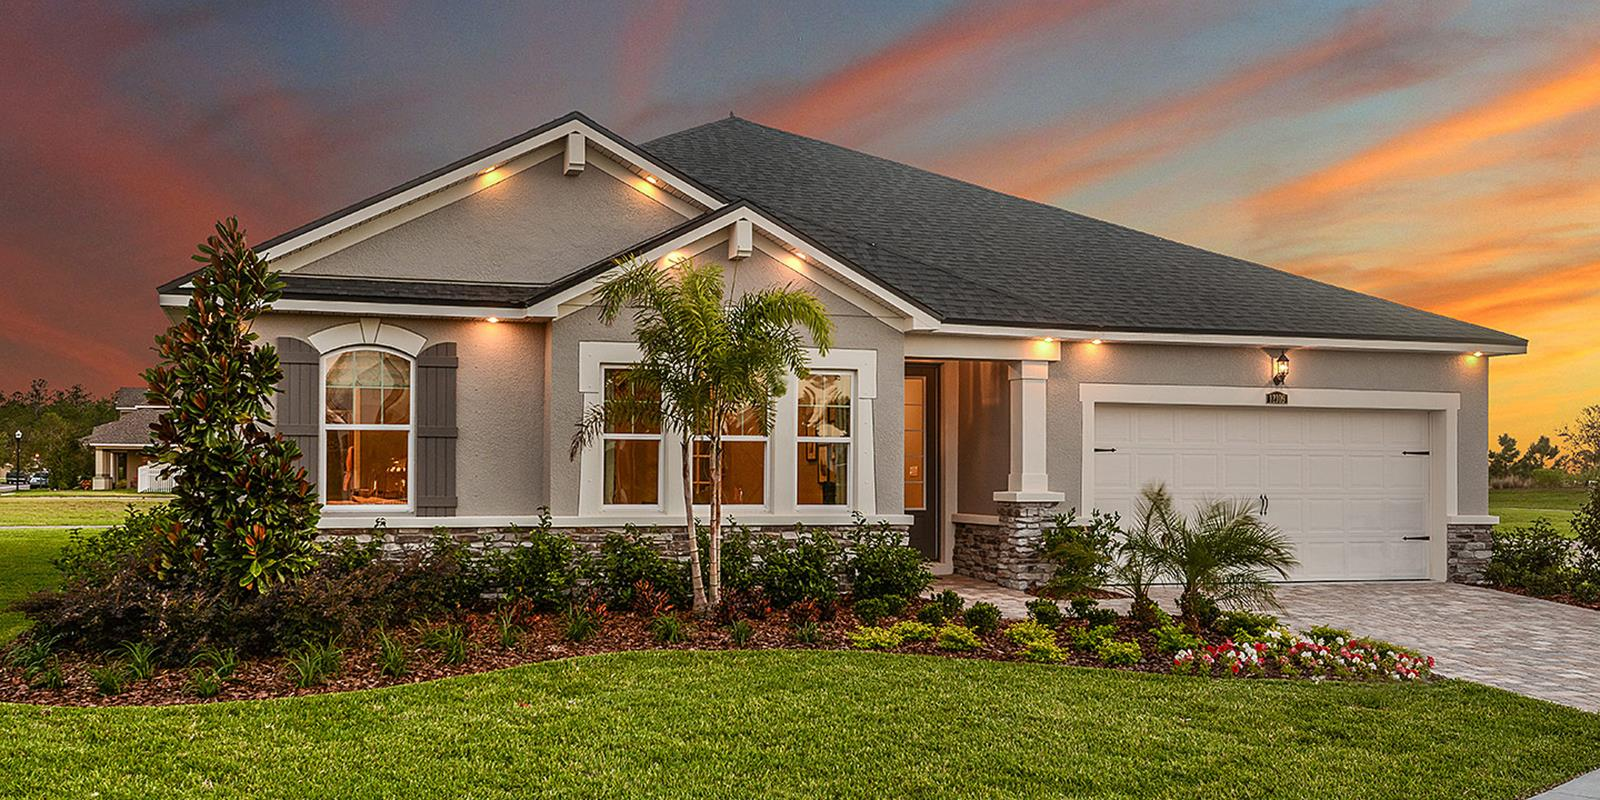 Triple Creek In Riverview Fl Prices Plans Availability